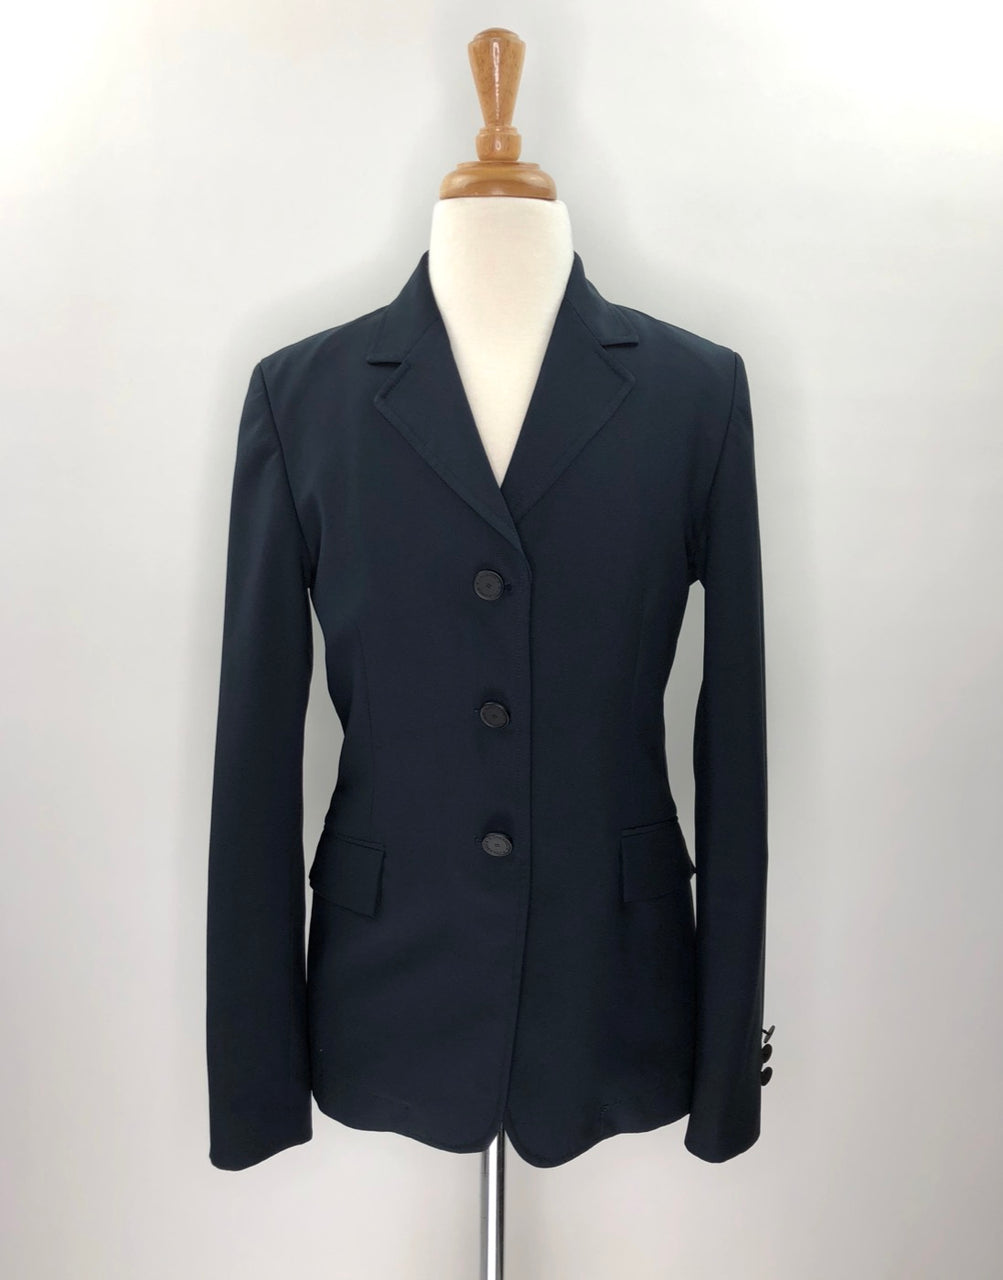 RJ Classics Ellie Show Jacket in Navy - Children's 16R